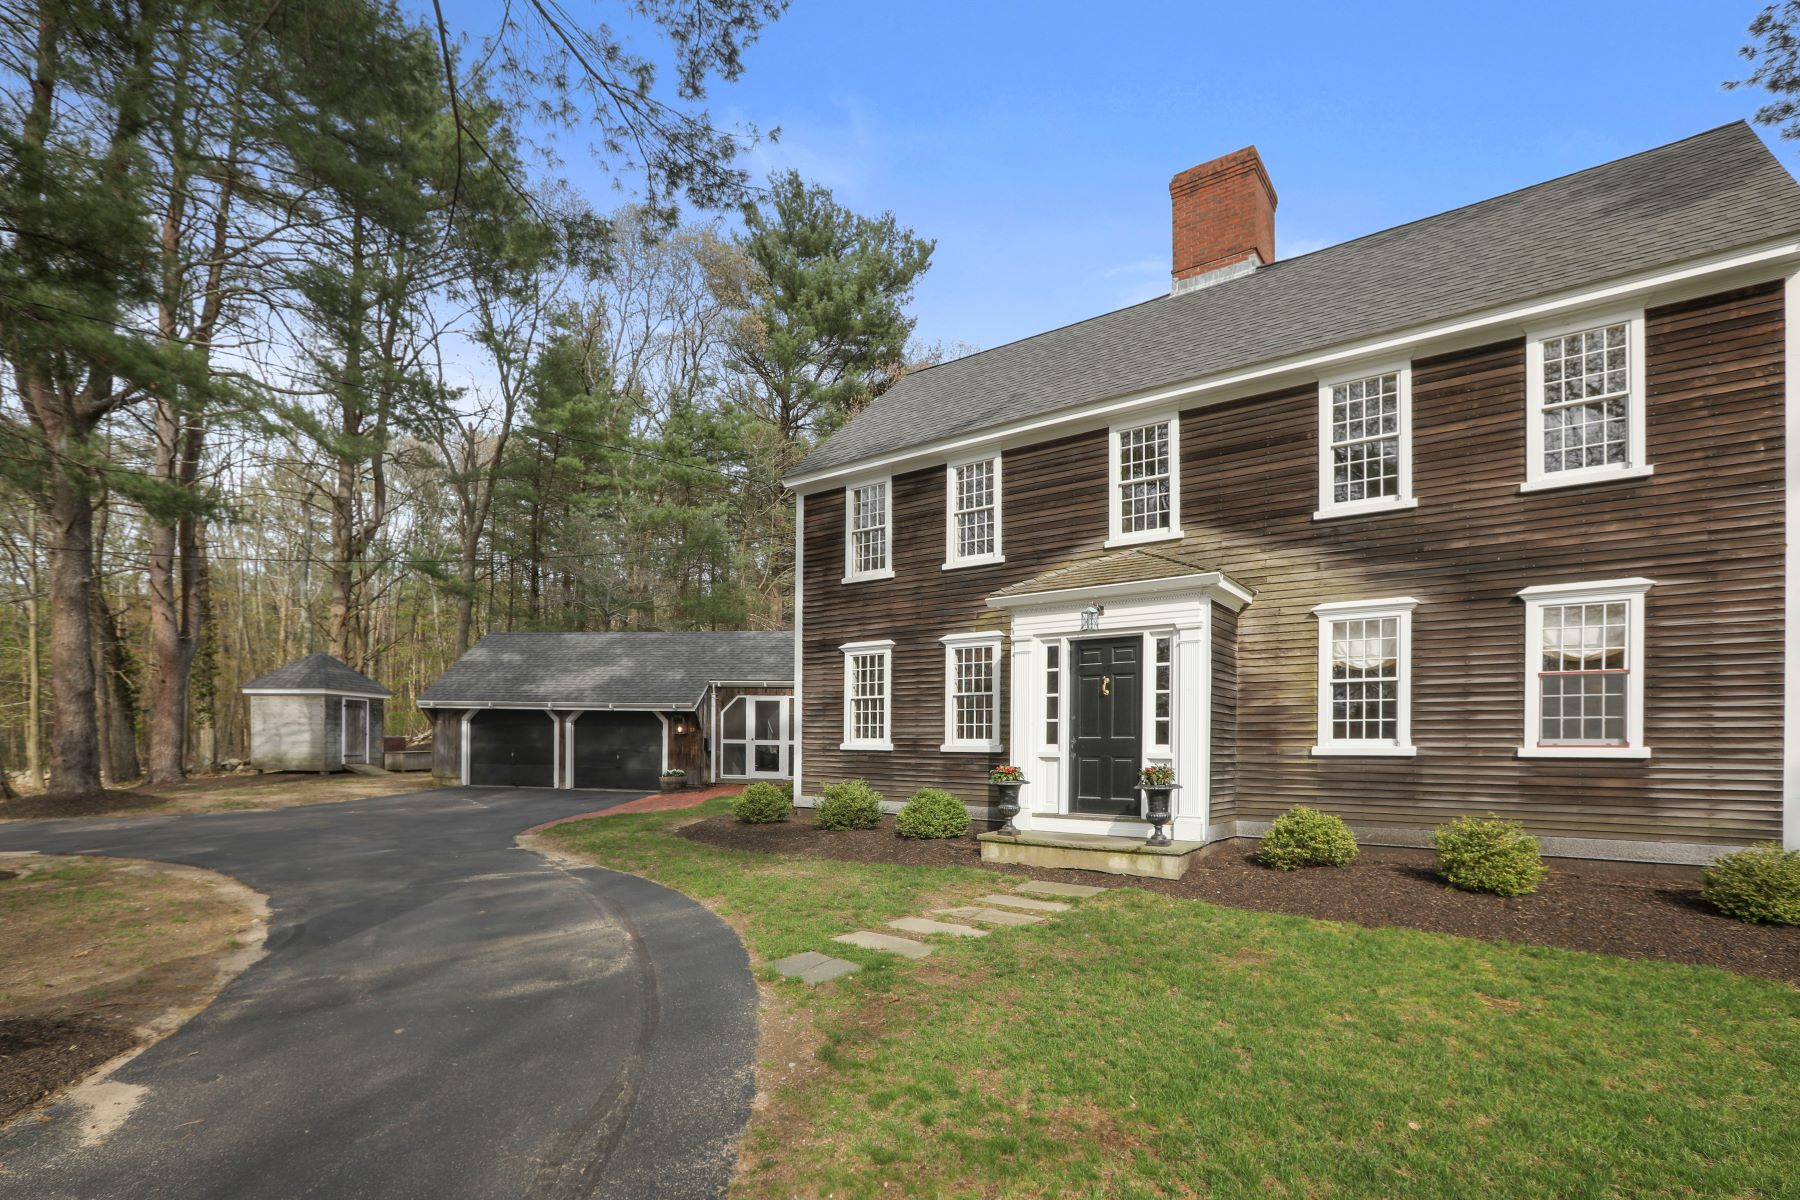 Single Family Home for Active at Queen Anne Lane 17 Queen Anne Ln Norwell, Massachusetts 02061 United States